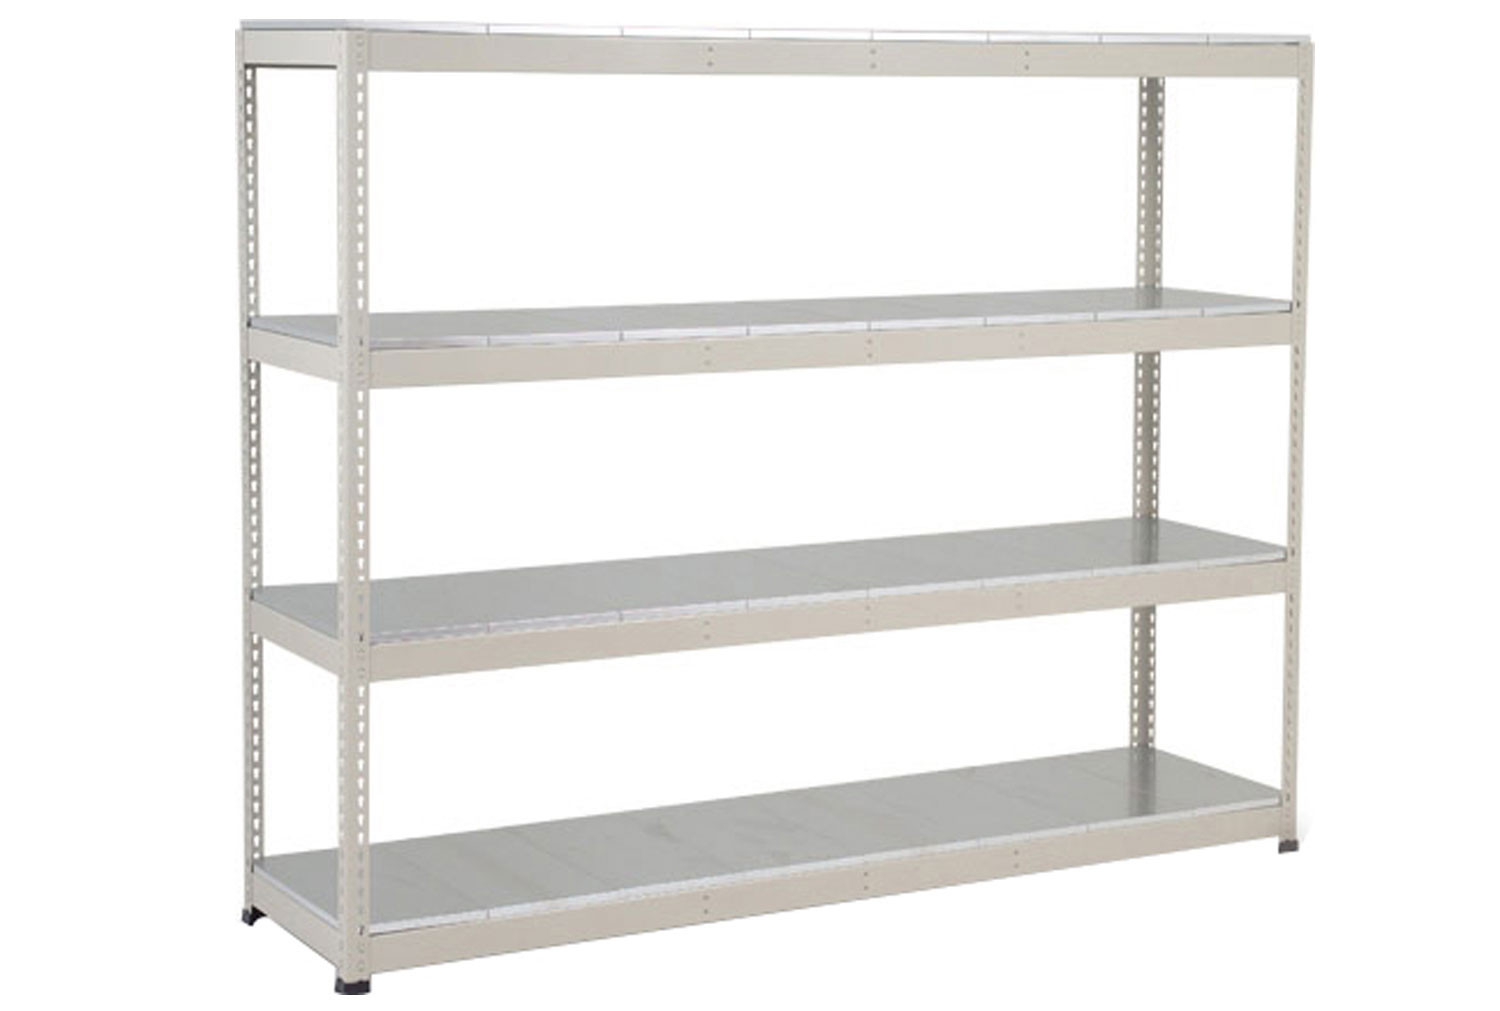 Rapid 1 Heavy Duty Shelving With 4 Galvanized Shelves 2440wx2440h (Grey)